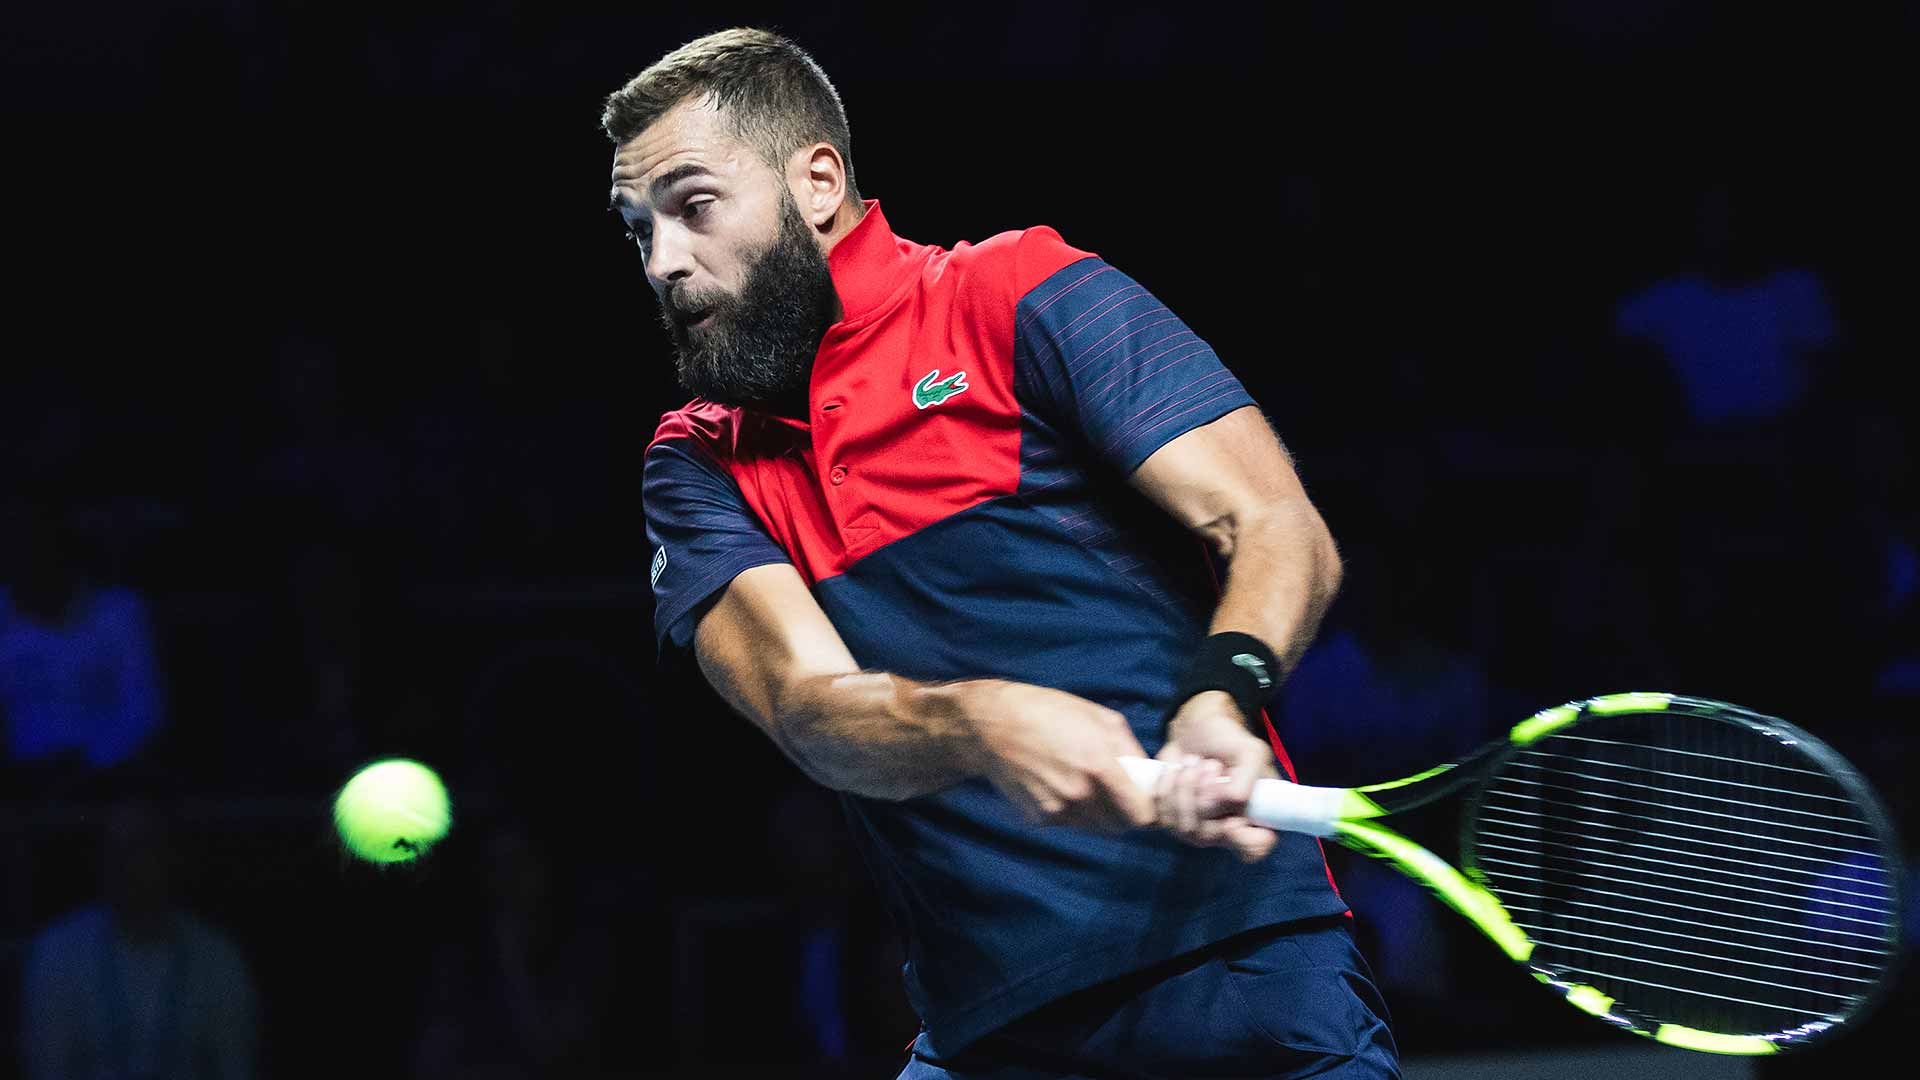 Benoit Paire is going for his first Moselle Open title this week in Metz.